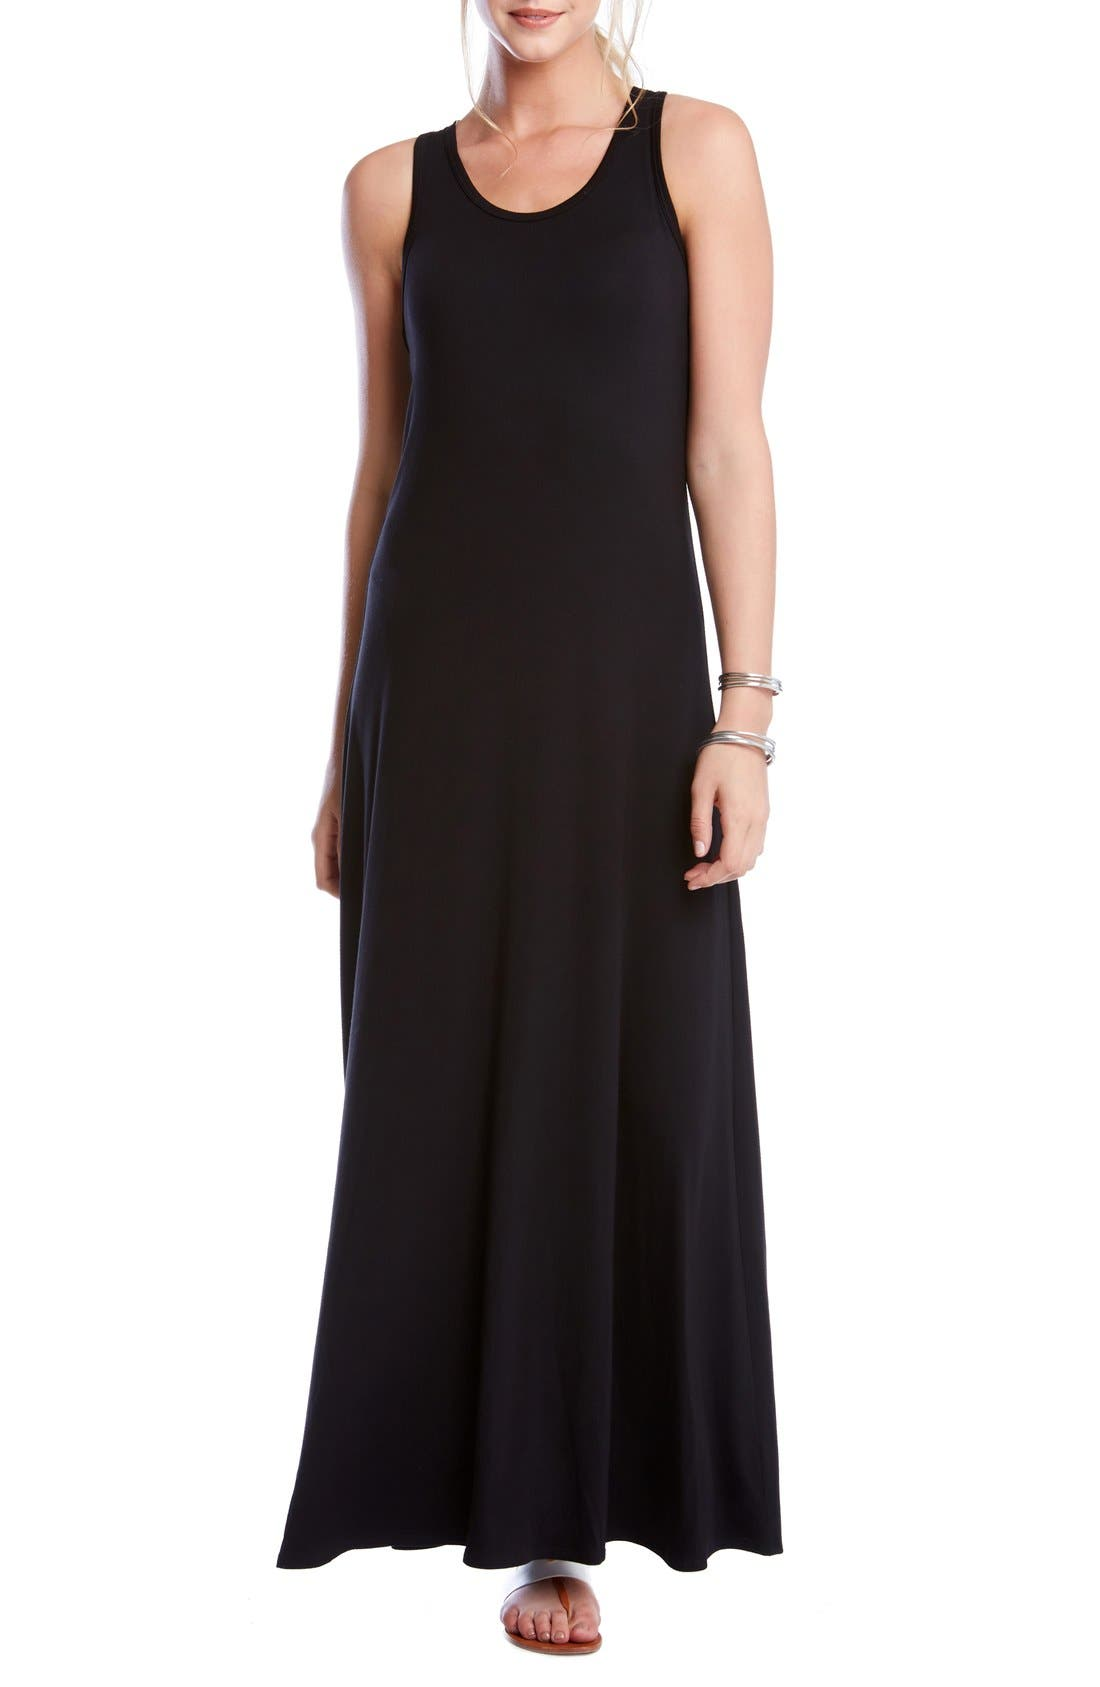 'Tasha' Racerback Jersey Maxi Dress,                         Main,                         color, Black